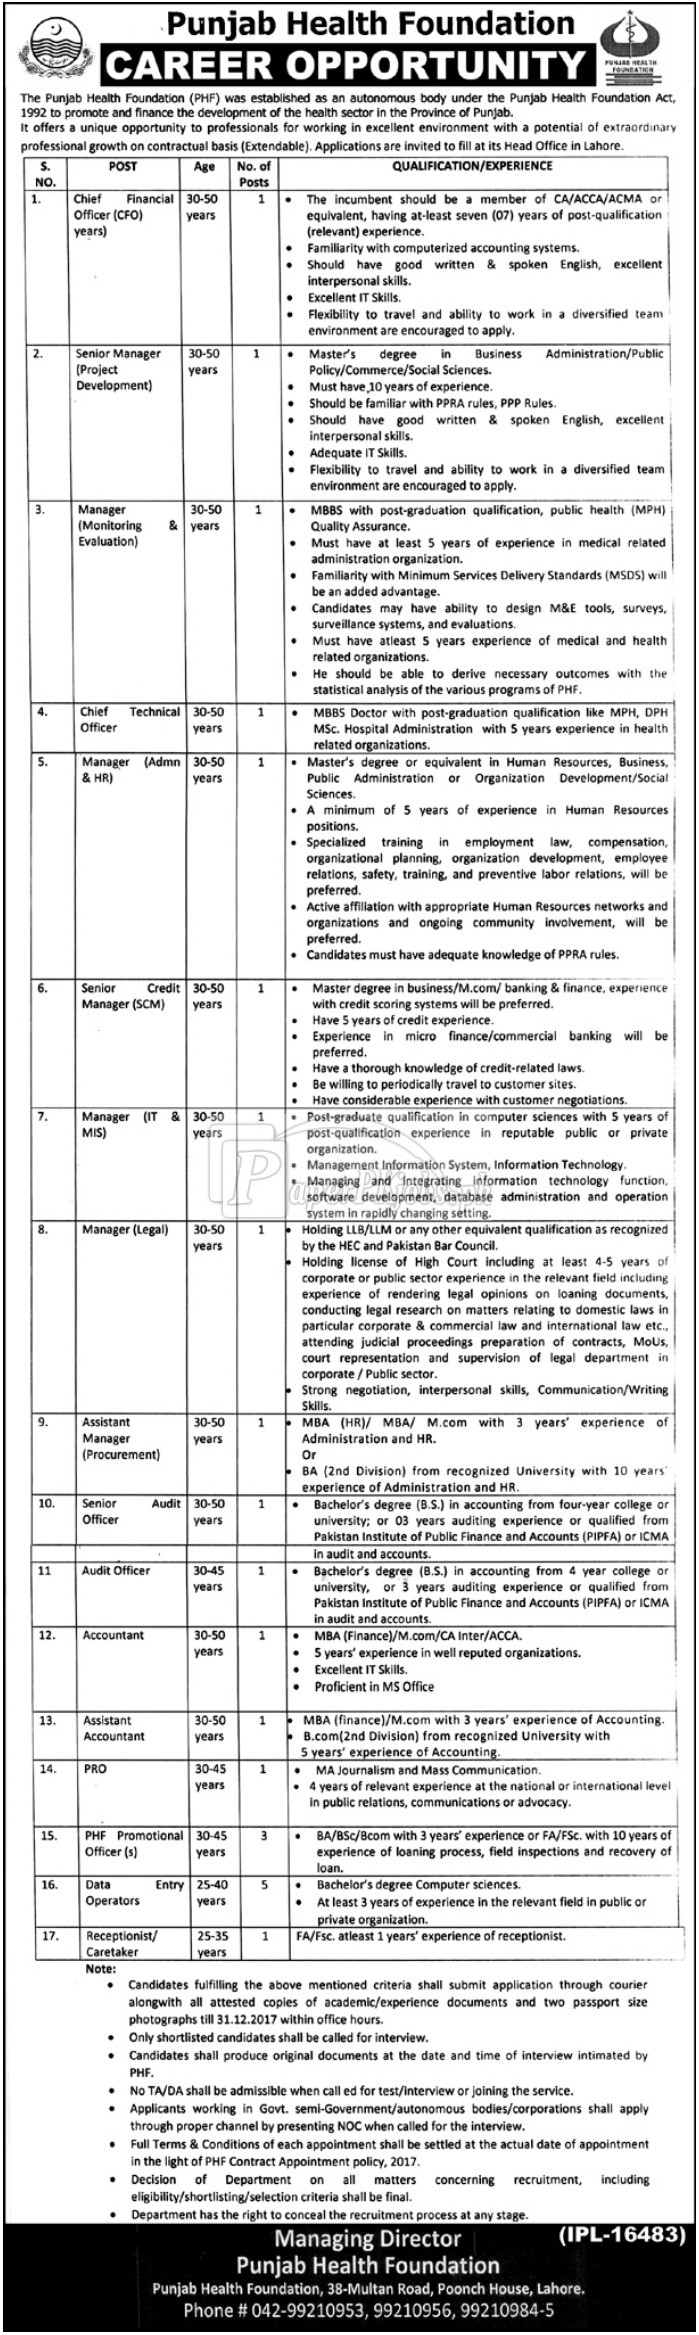 Punjab Health Foundation Jobs 2017